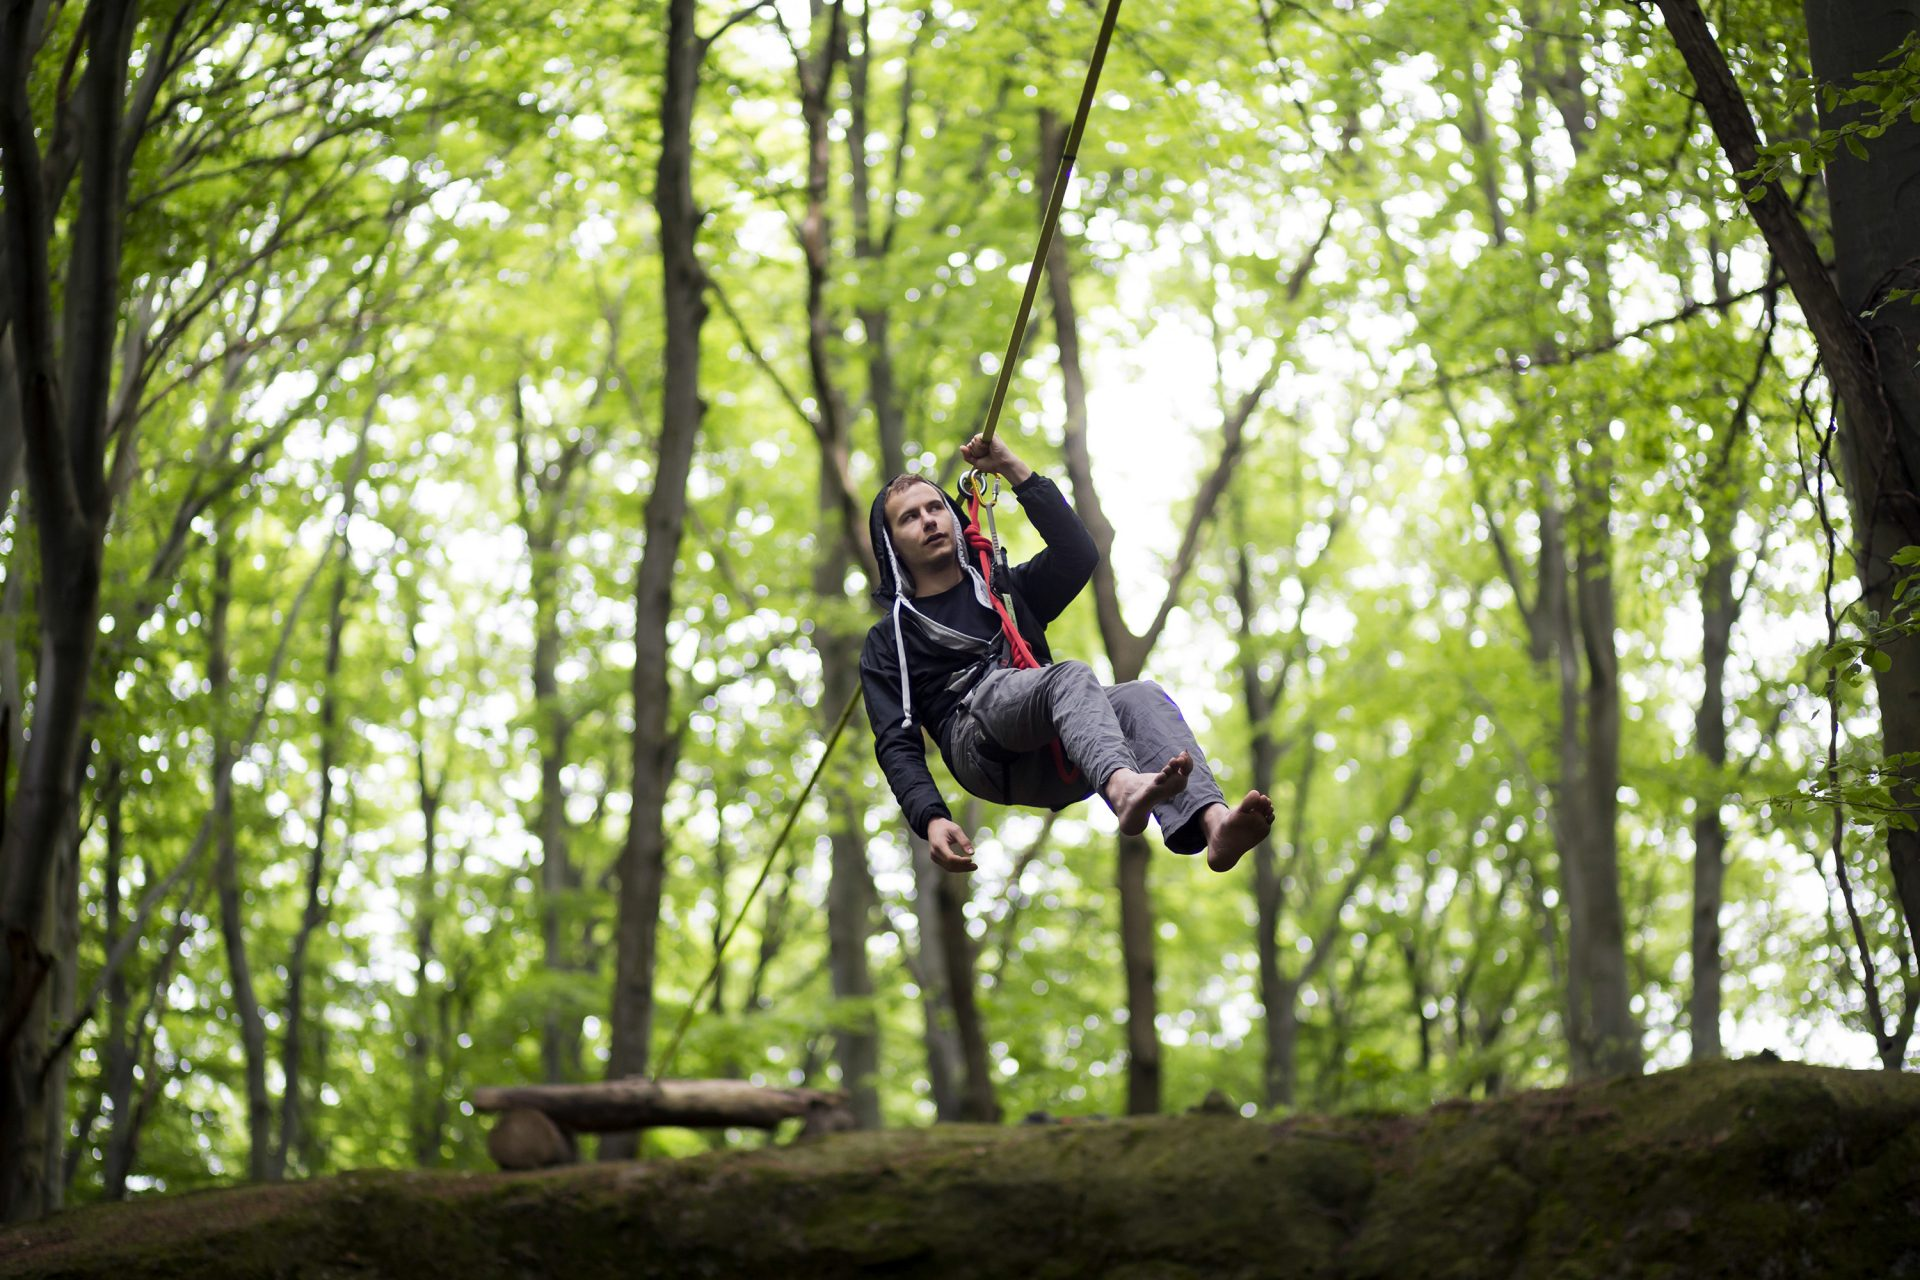 orosz_adam_outdoorinhales_highline-zsivany_rocks_pilis_no2_07